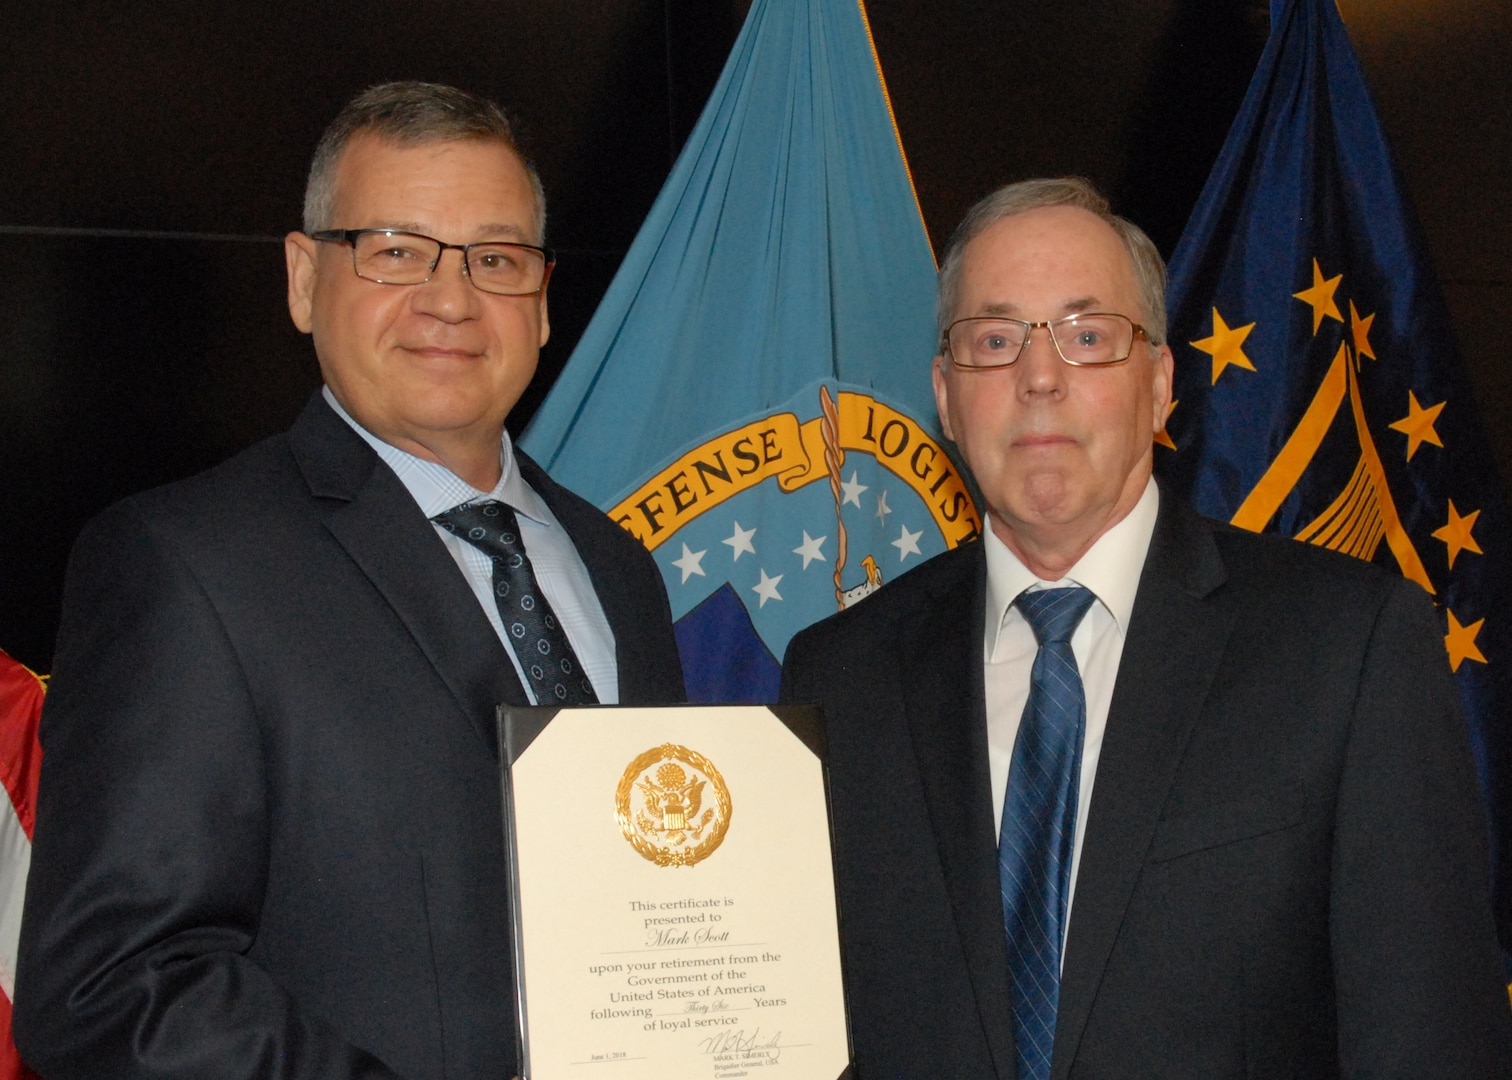 Mark Scott (right), DLA Troop Support Construction and Equipment integrated support team chief, poses for a photo with Troop Support Deputy Commander Richard Ellis (left) during a retirement ceremony May 31 in Philadelphia.